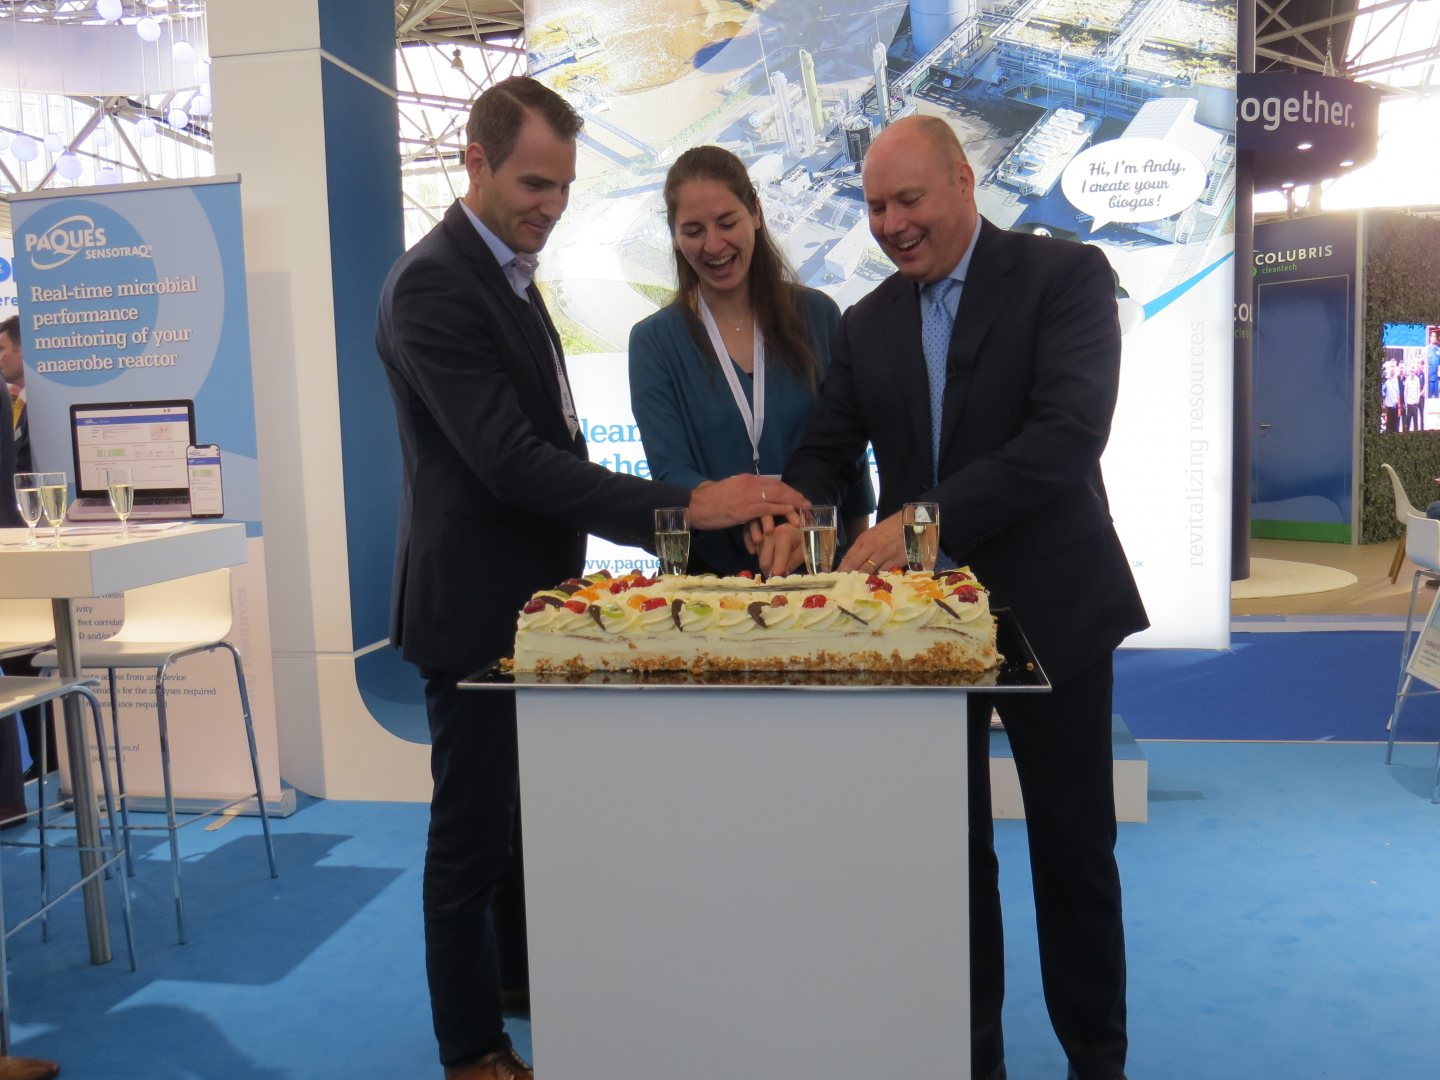 CEO Stephan Bocken of Paques cuts a cake to celebrate the delivery of the 1500th Biopaq waste water treatment plant.